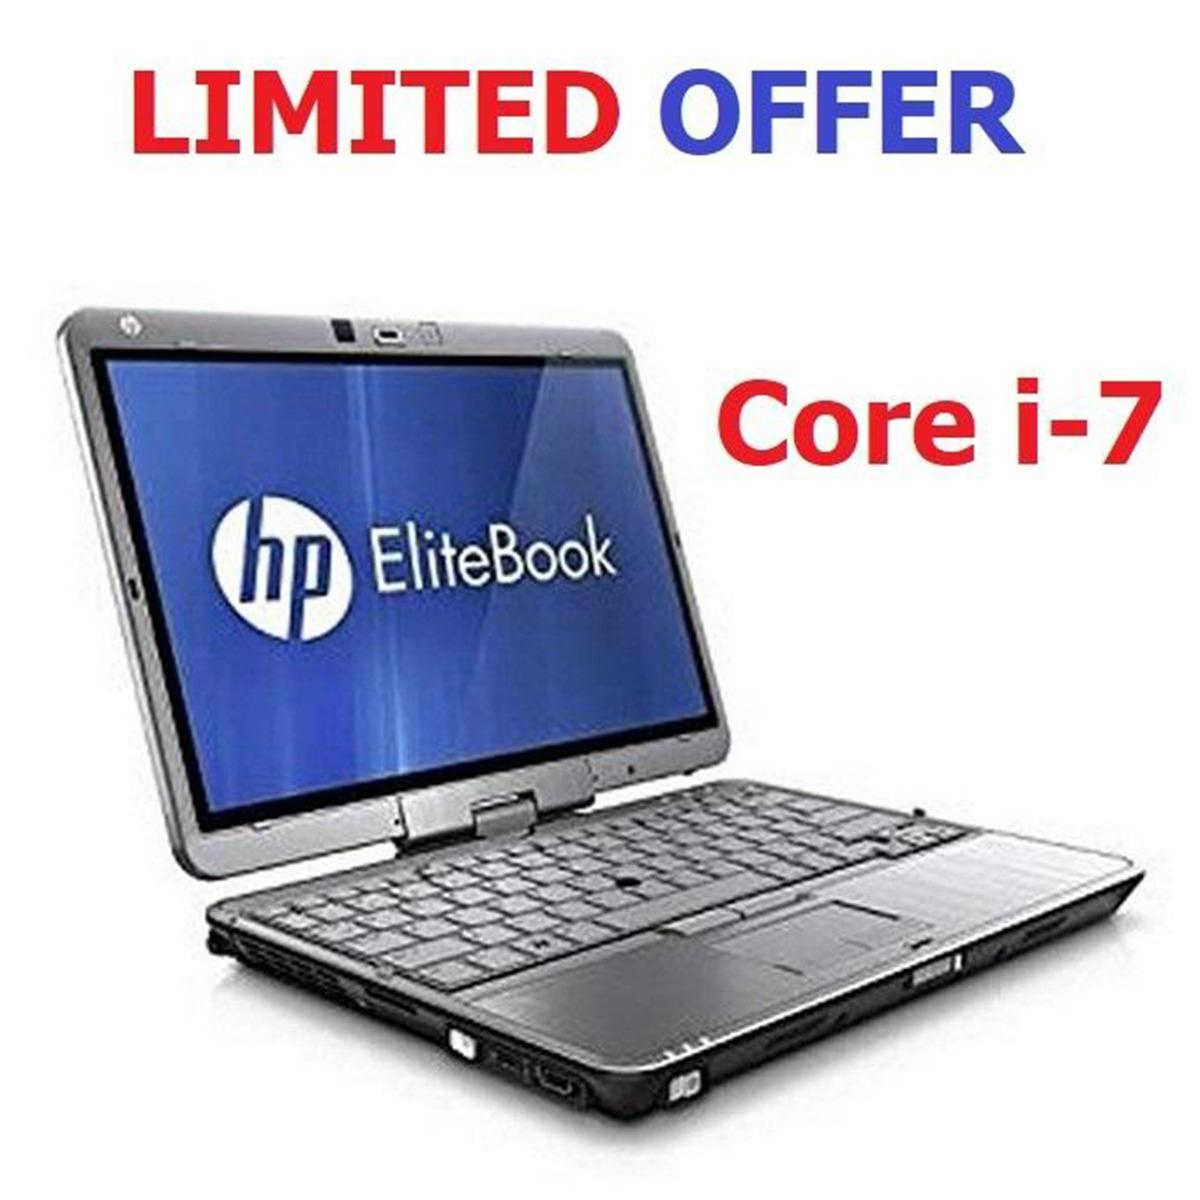 Core i7 Touch Screen 2760p 4 GB Ram 250 GB HDD ( Refurb )